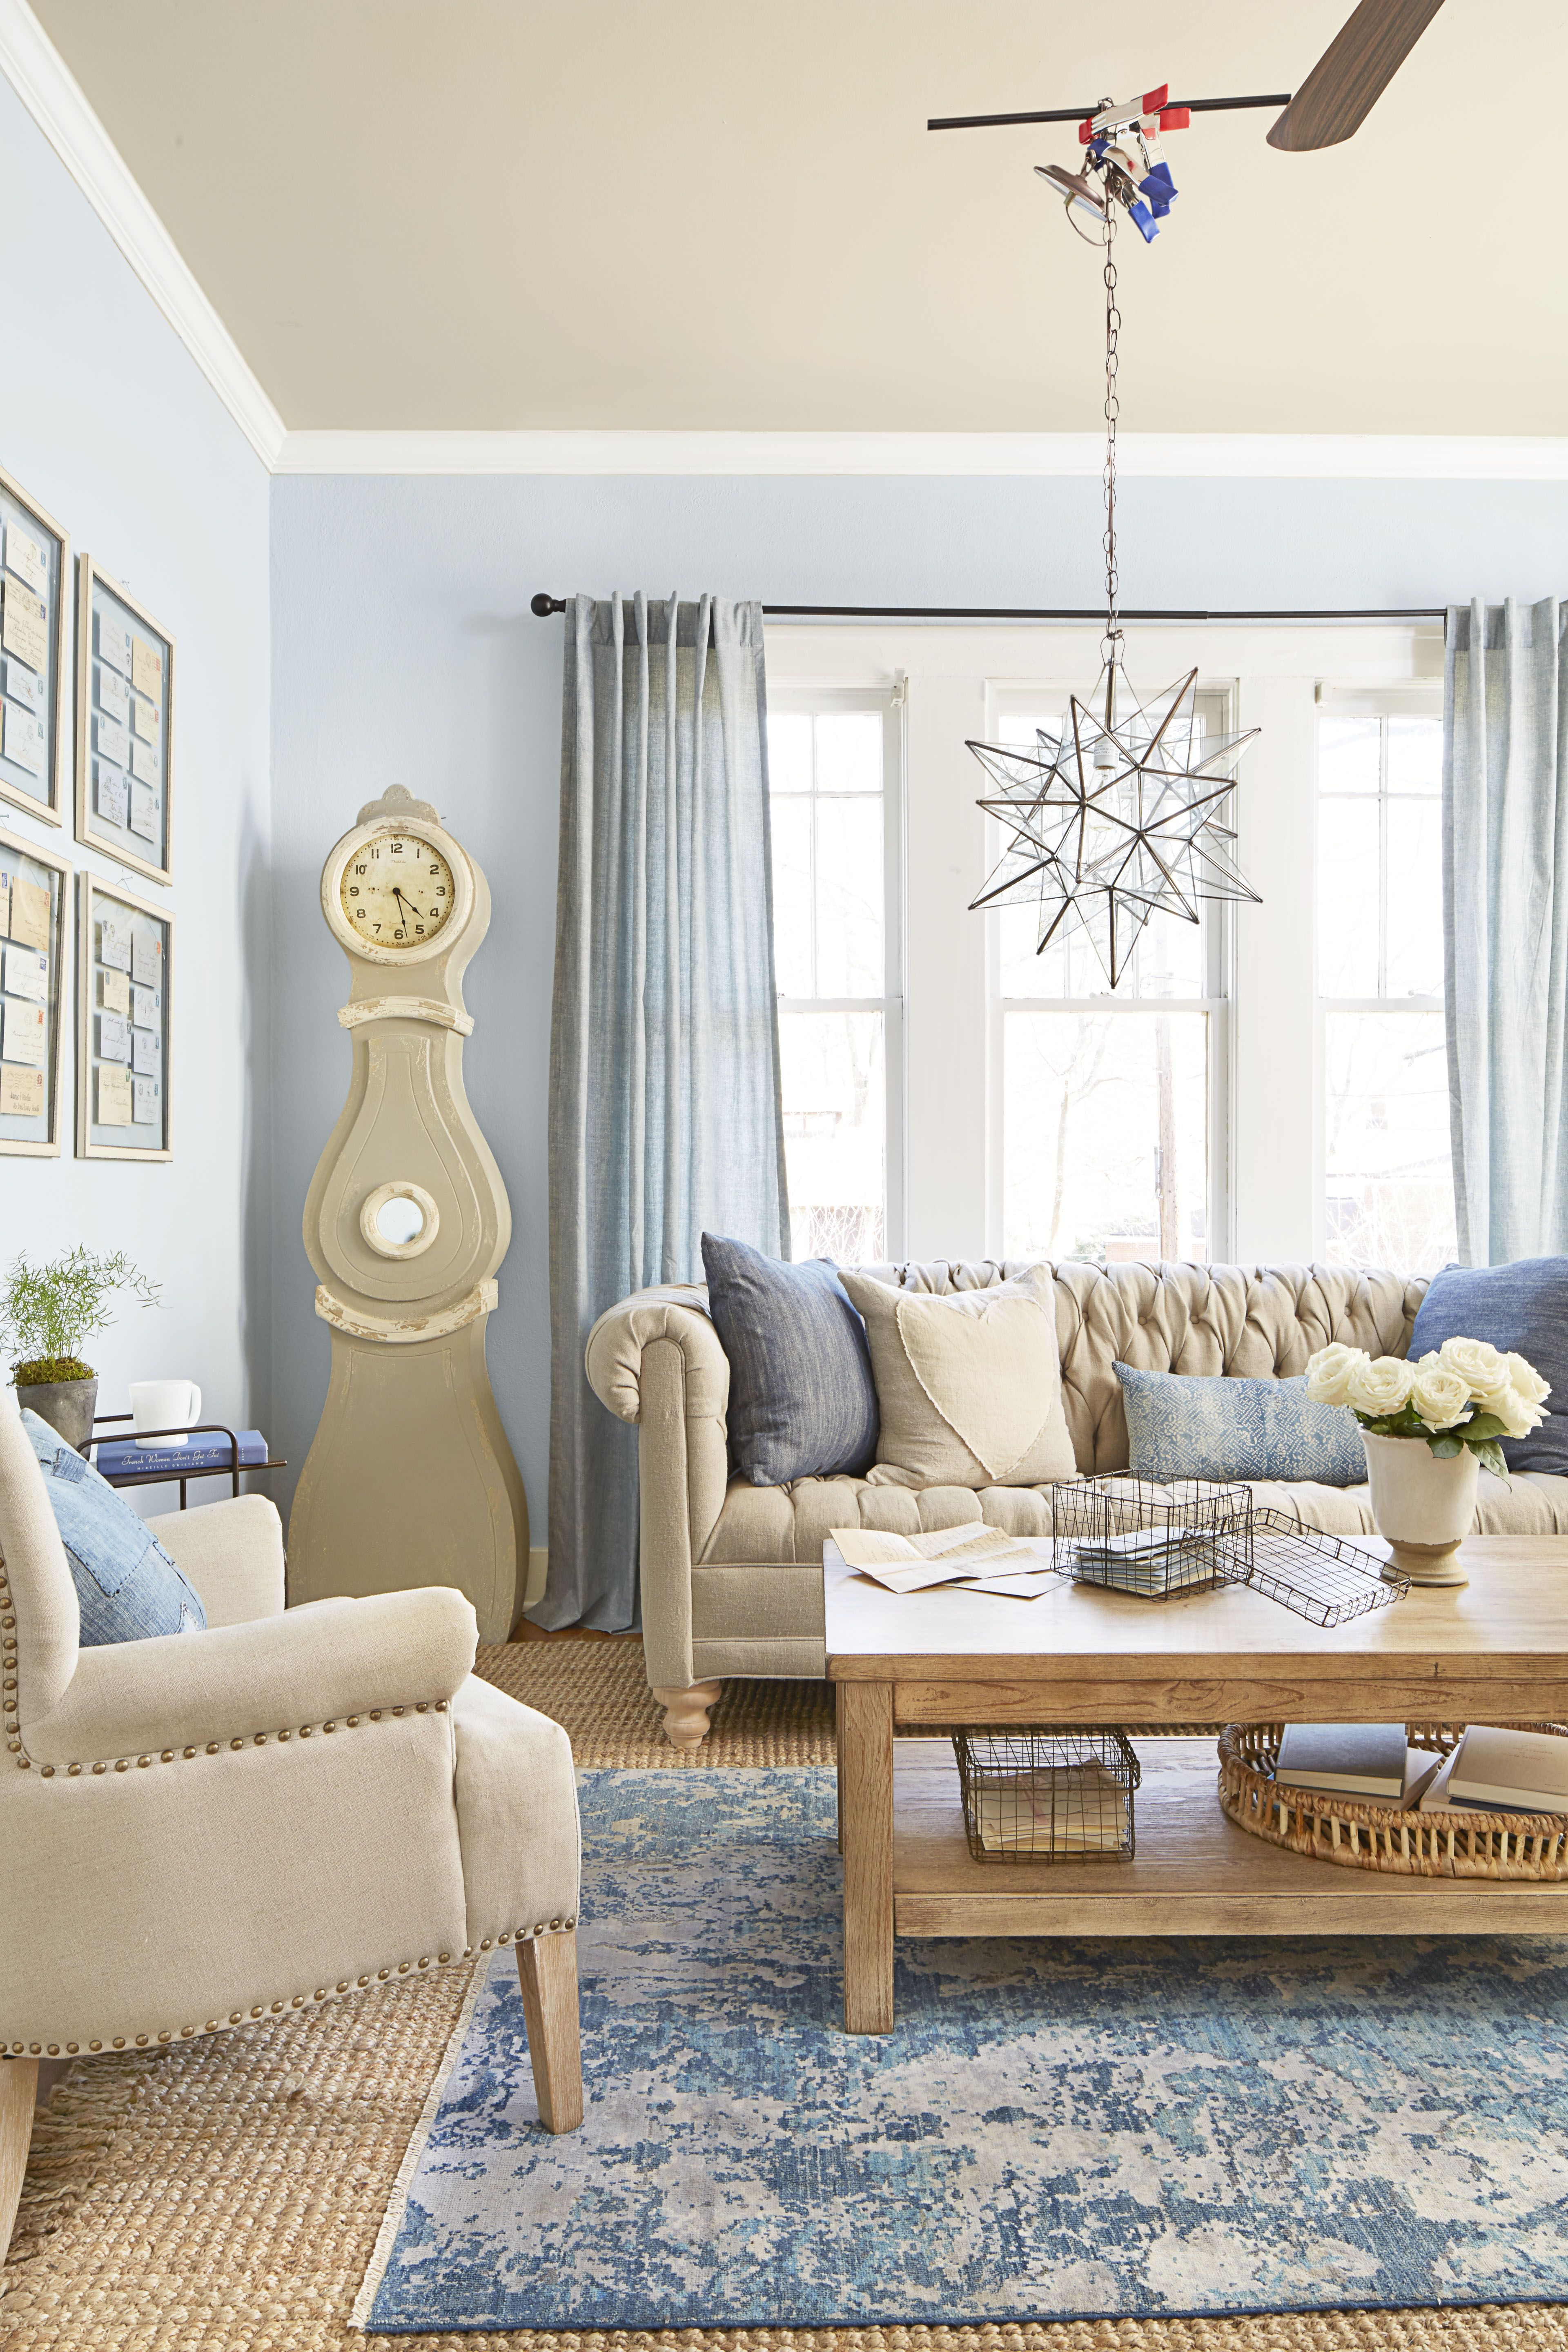 13 Colors That Go With Gray Best Colors To Go With Gray Walls